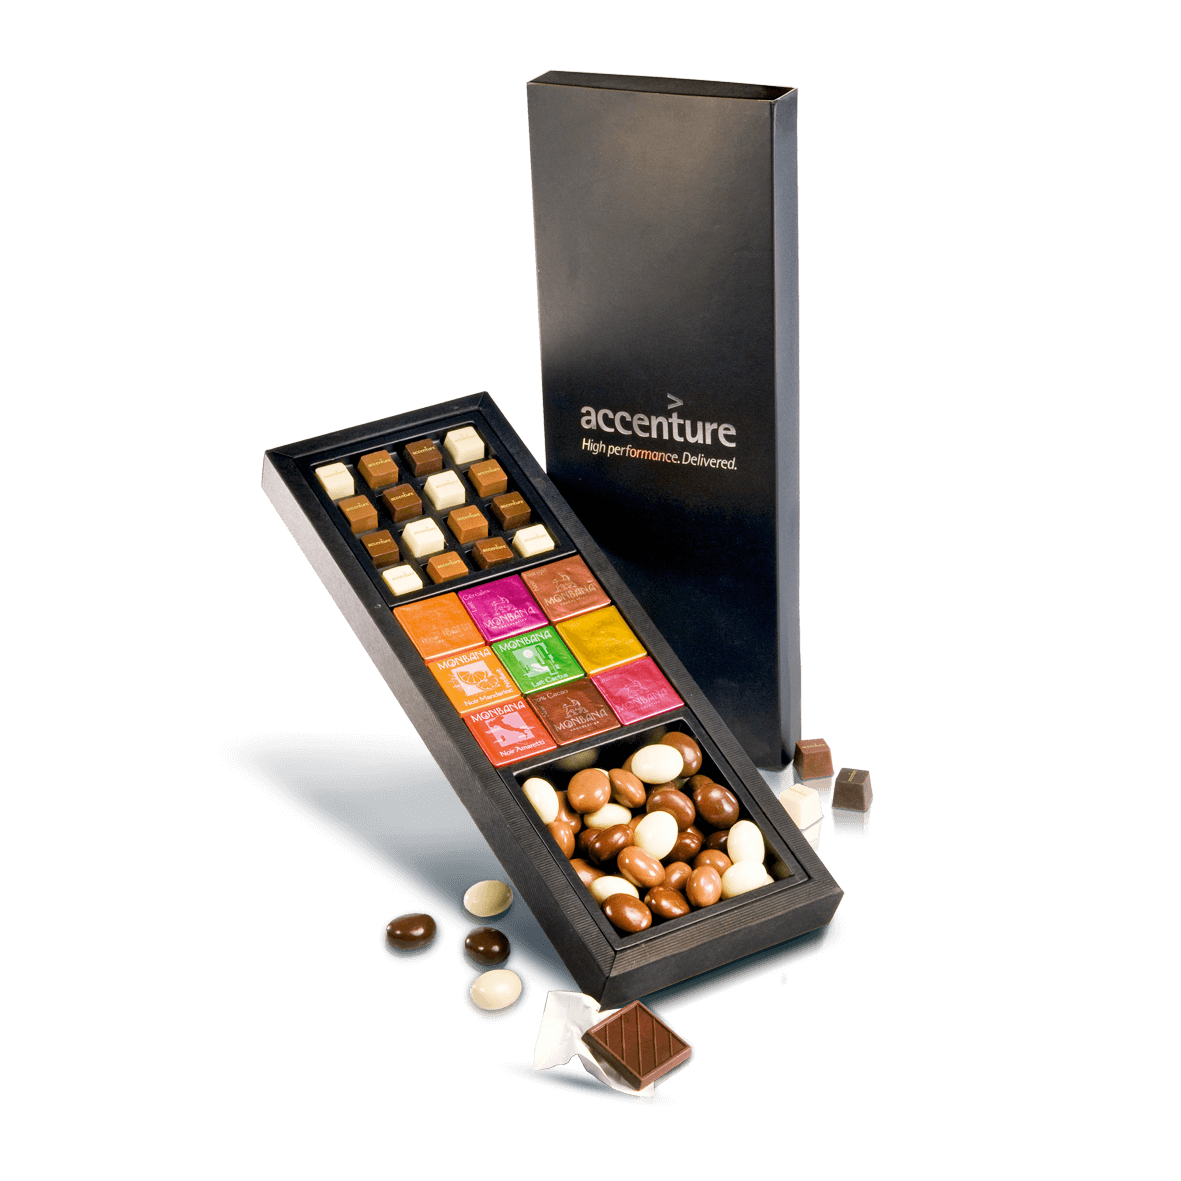 Box with 3 varieties of chocolate